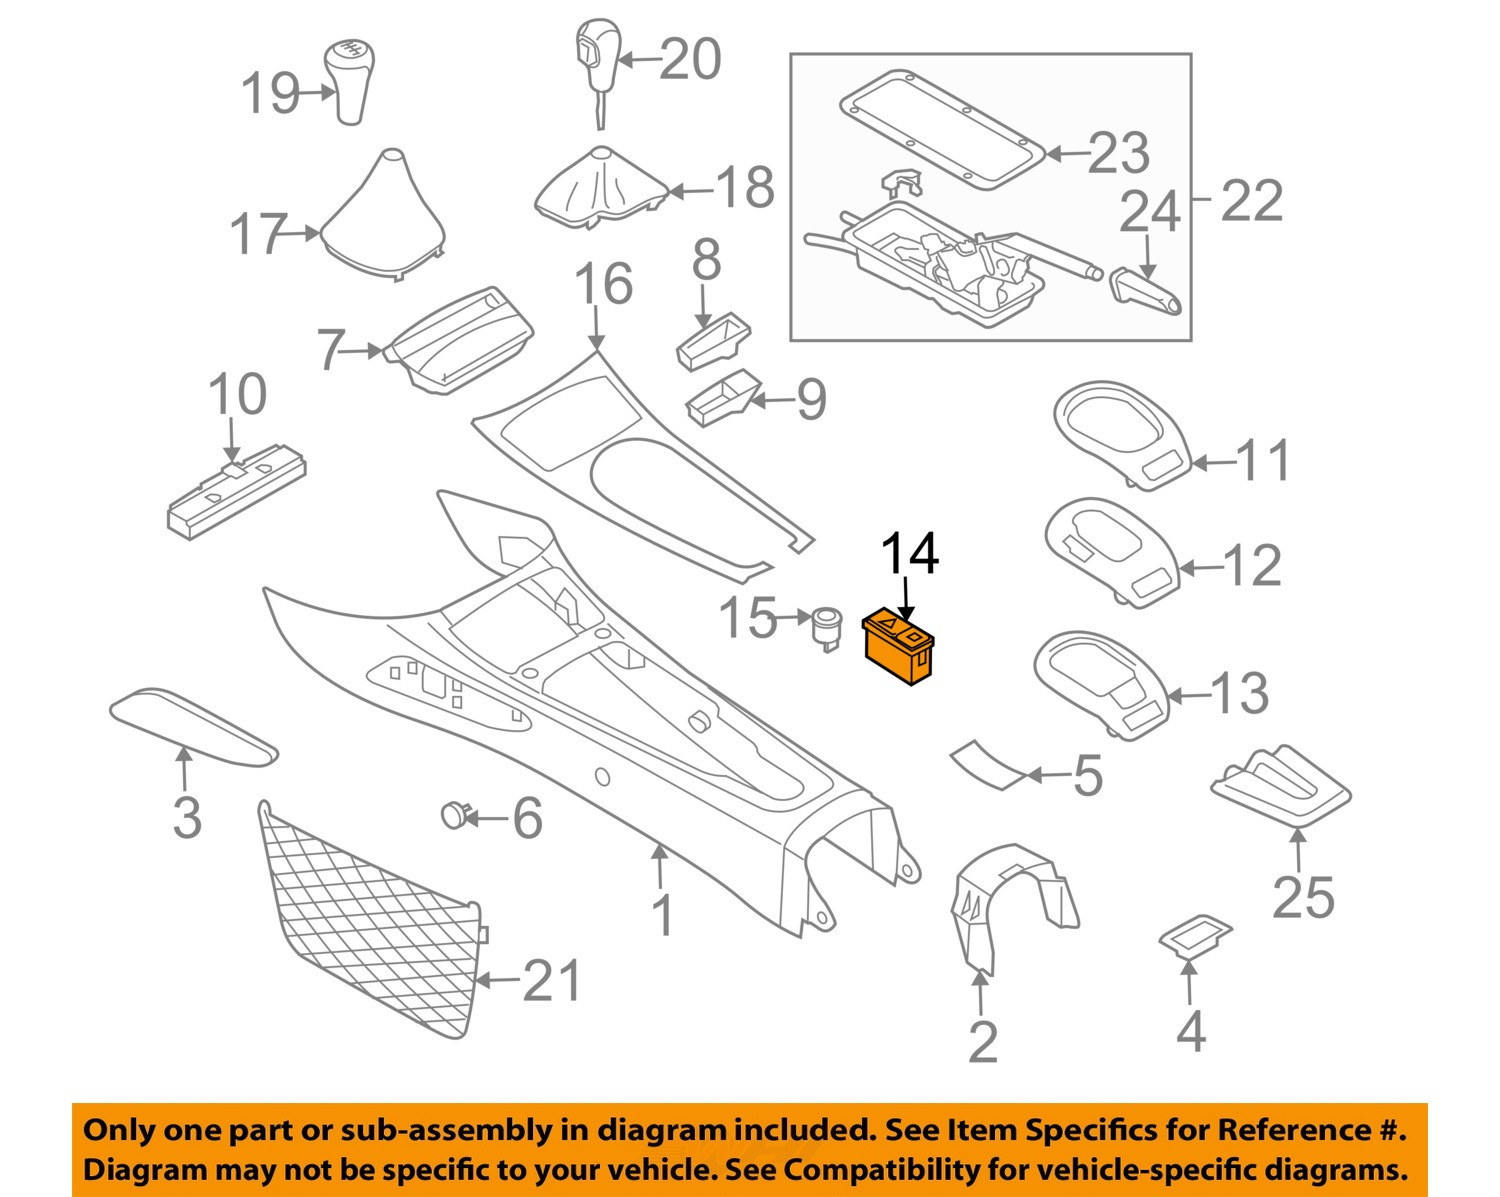 hight resolution of bmw e46 fuse box diagram likewise 2006 330i 2007 mercedes benz s550 fuse box diagram elsavadorla